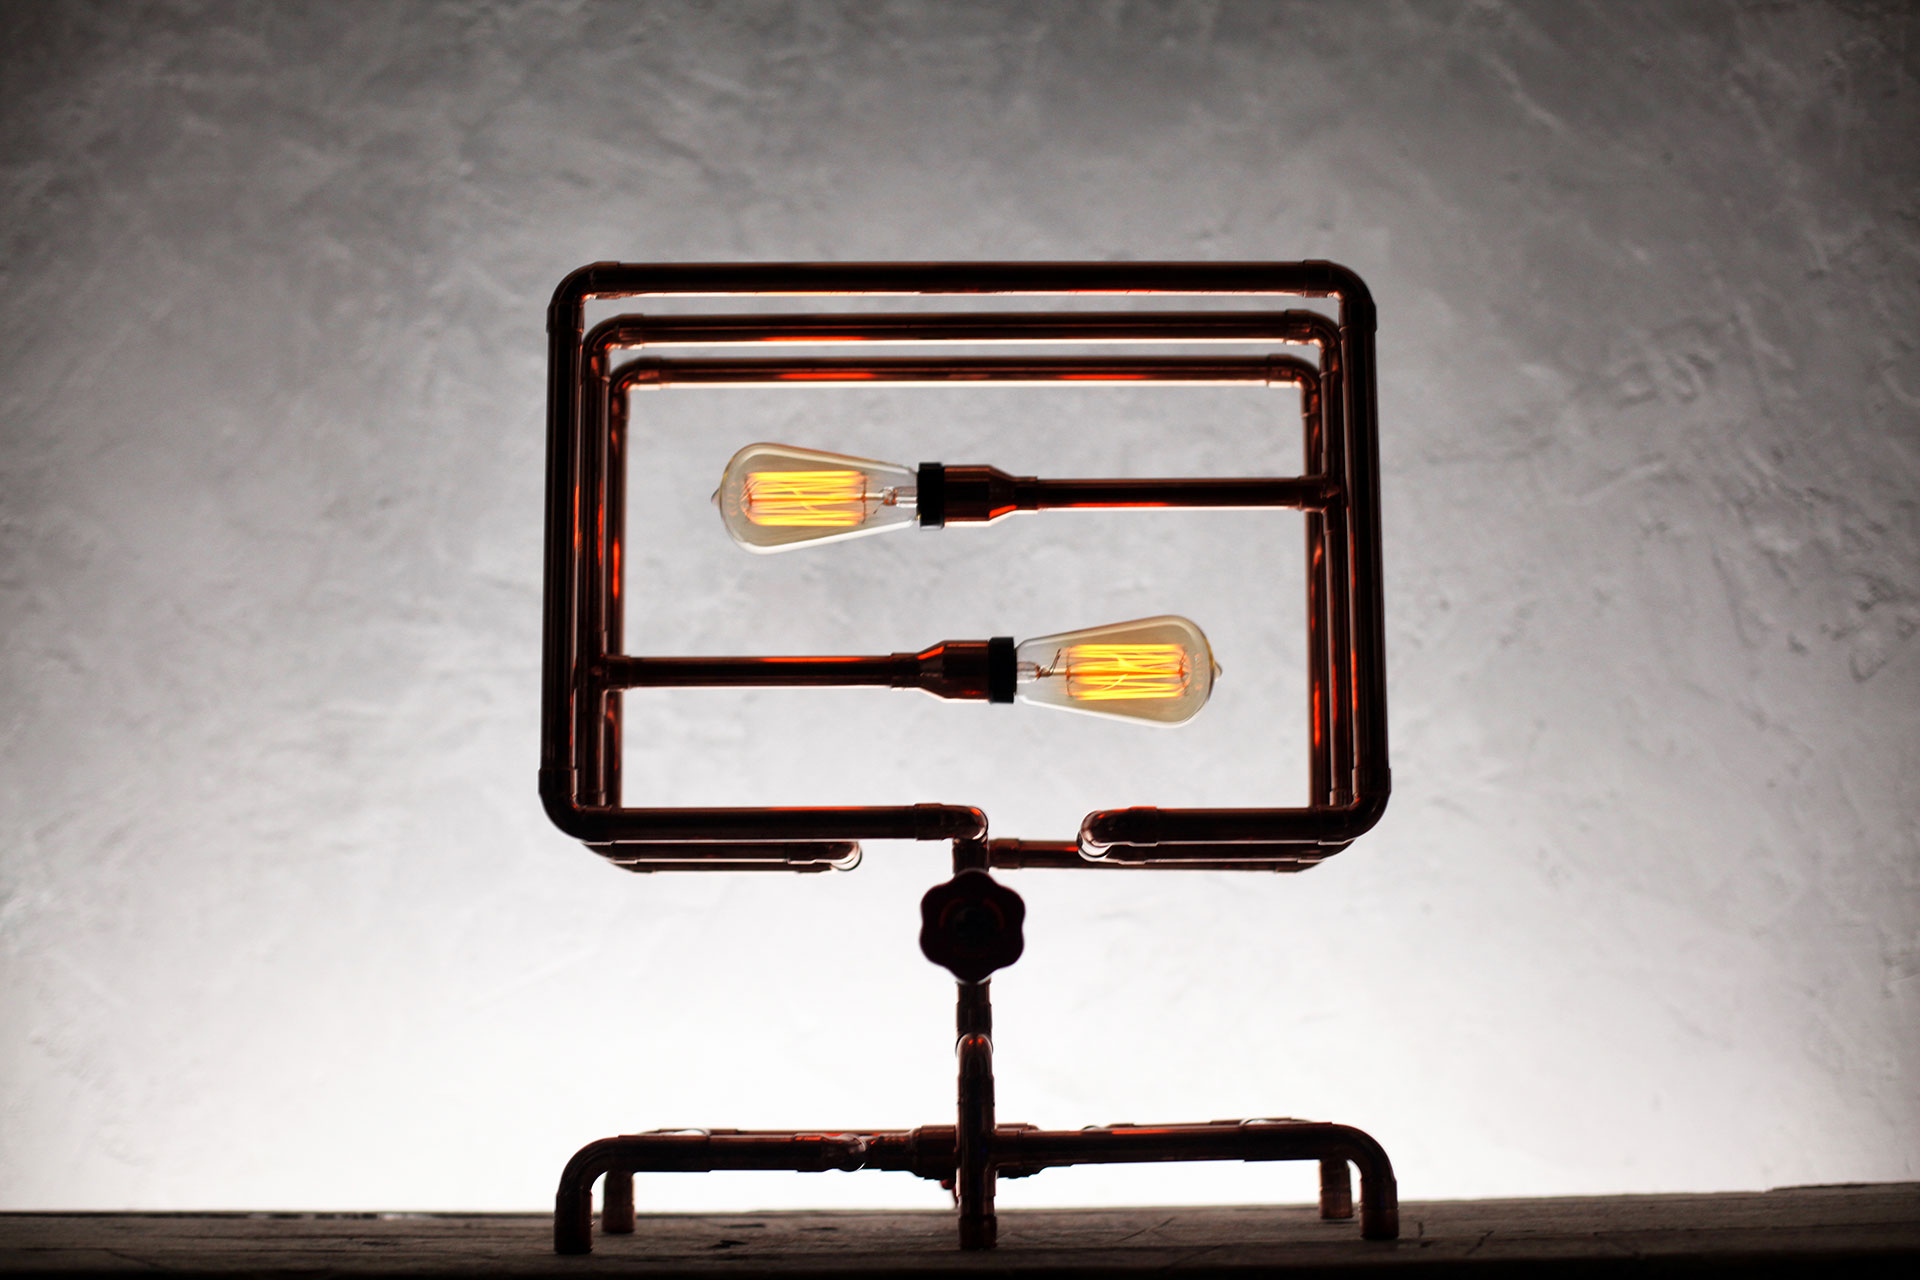 Unique console lamp in trendy industrial style inspired by Frank Buchwald machine lights